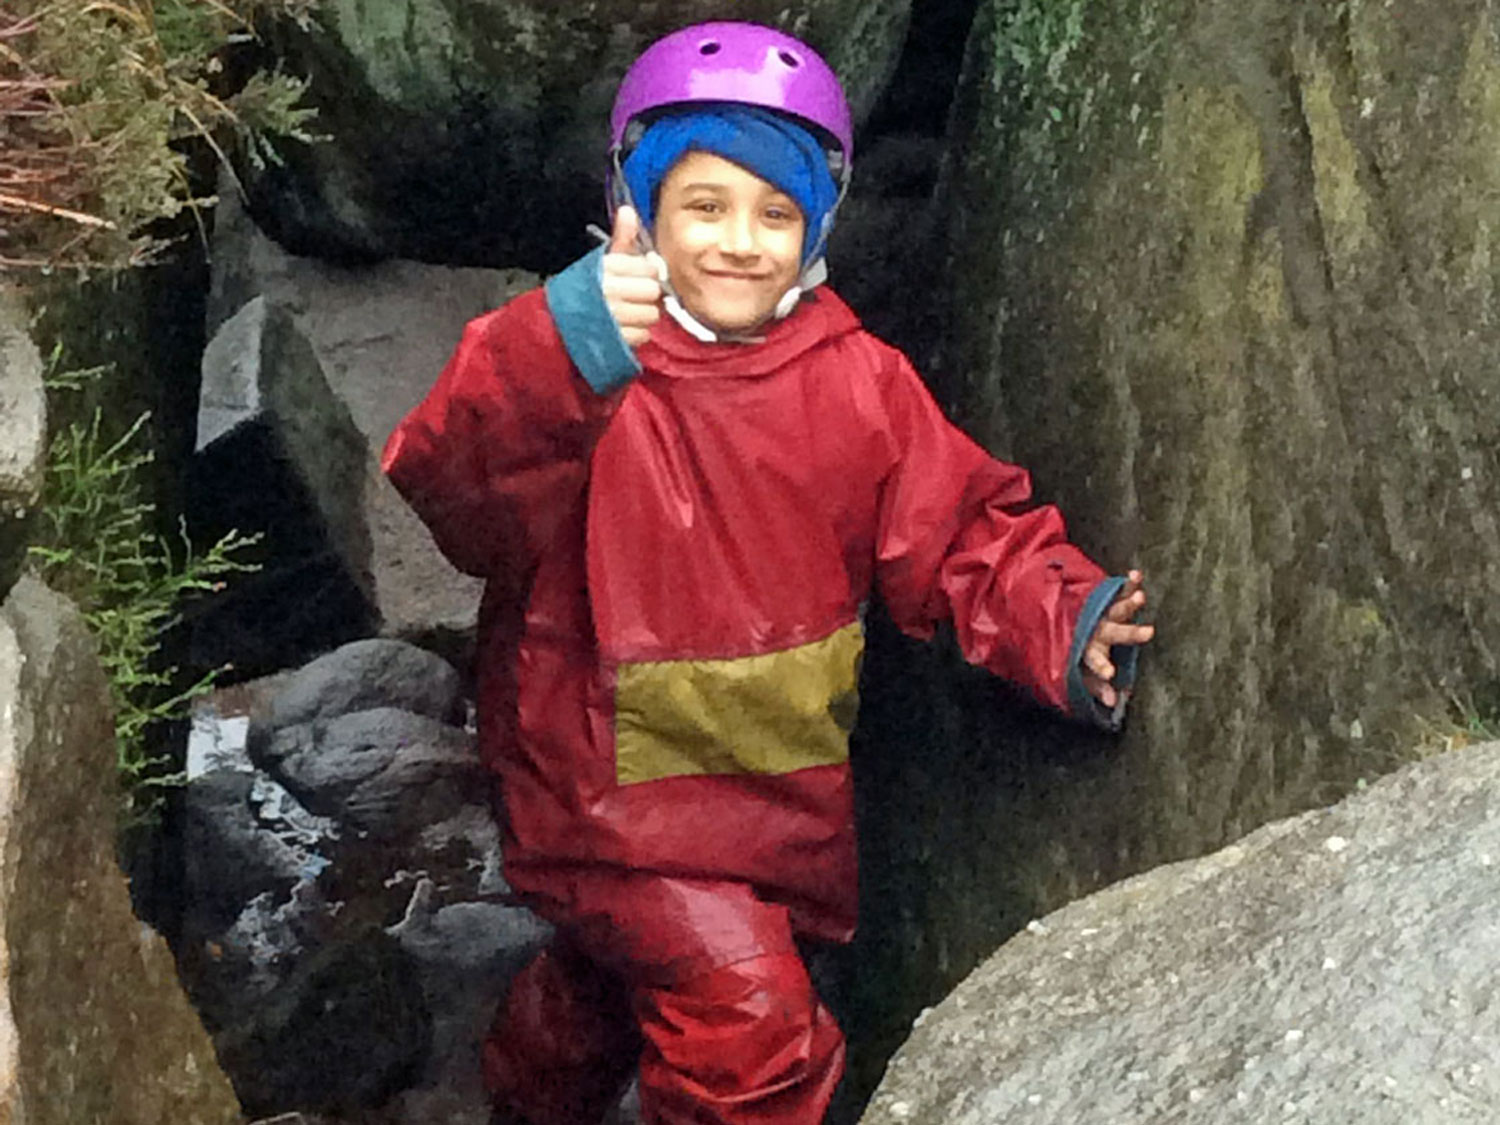 School child gives the camera and smile and a thumbs up as he clambers between boulders on a weaselling session in the Peak District